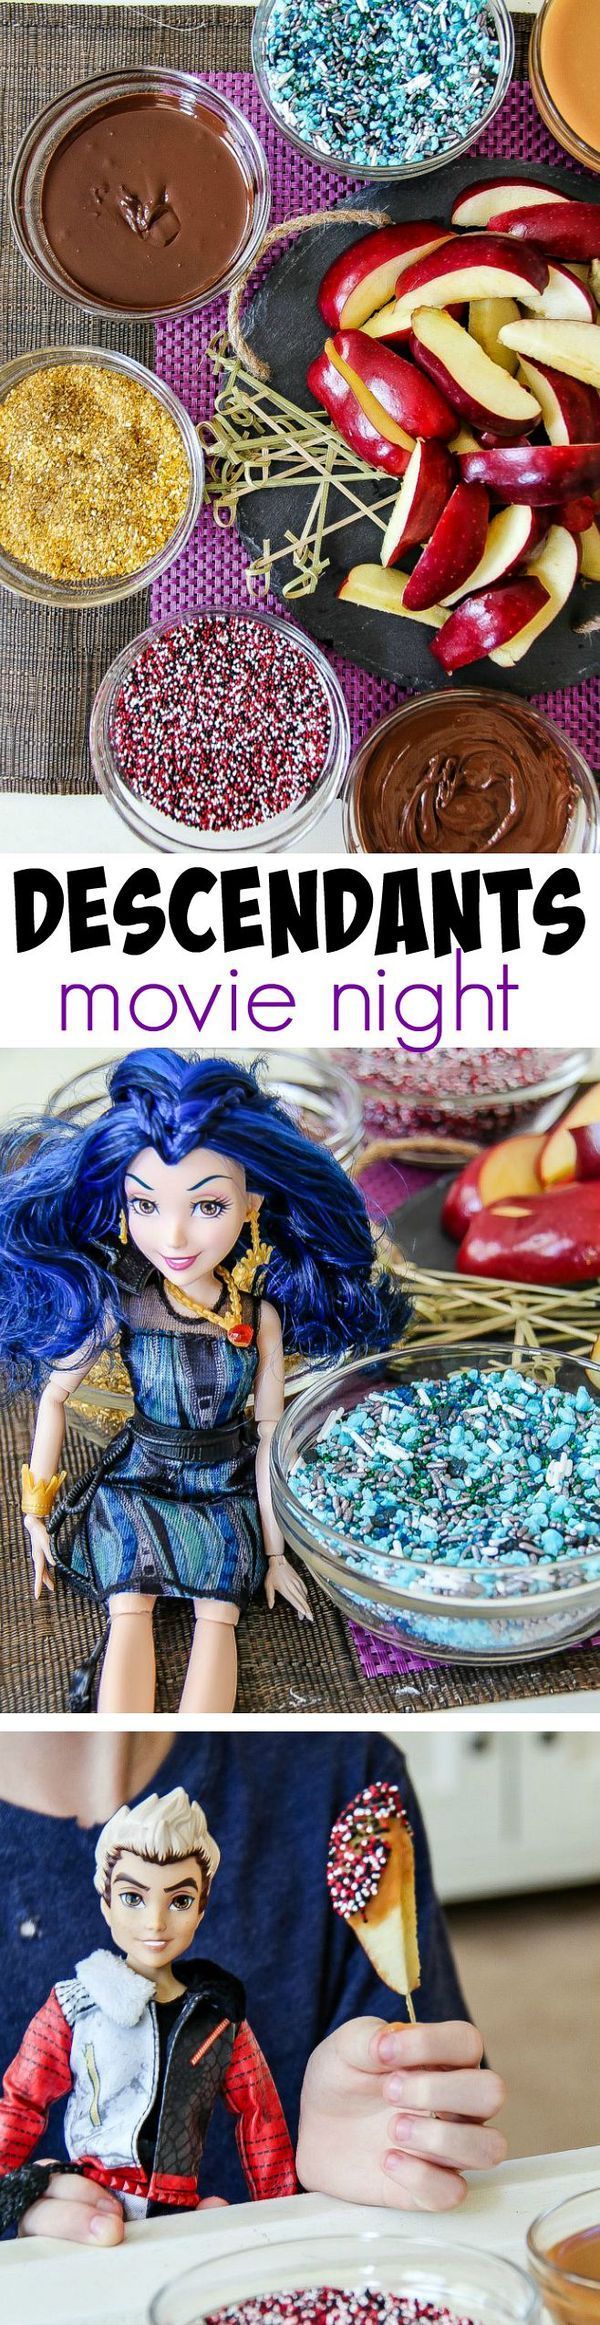 """Host a """"Disney's Descendants"""" movie night with these delicious dipped apples along with Evie and Carlos themed sprinkles #Disney #VillainDescendants #Ad"""